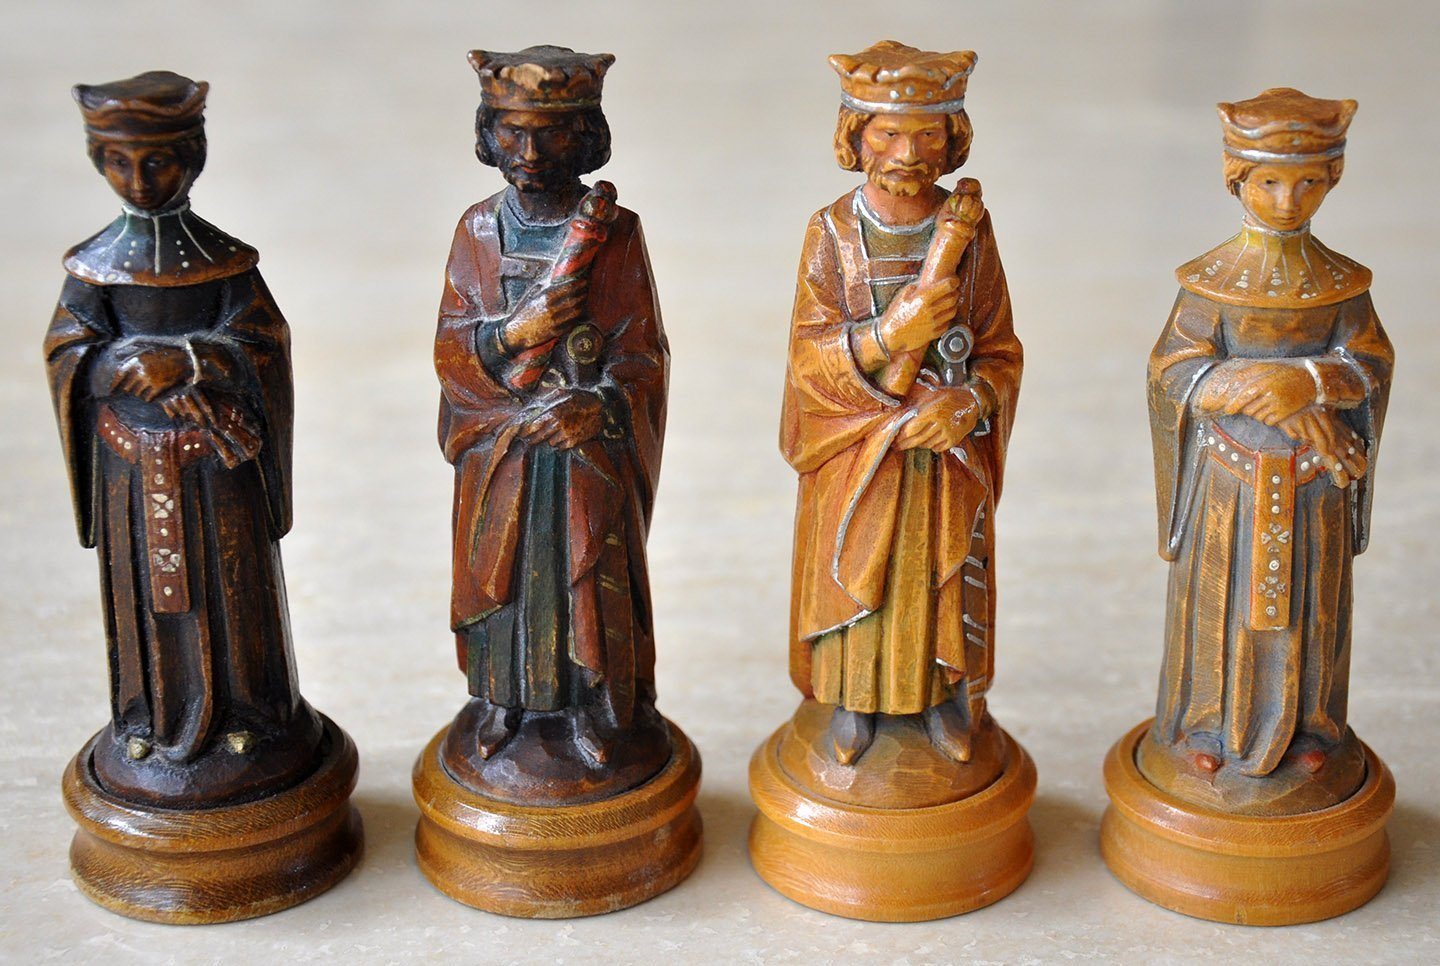 Anri king arthur chess set cased - Collectible chess sets ...